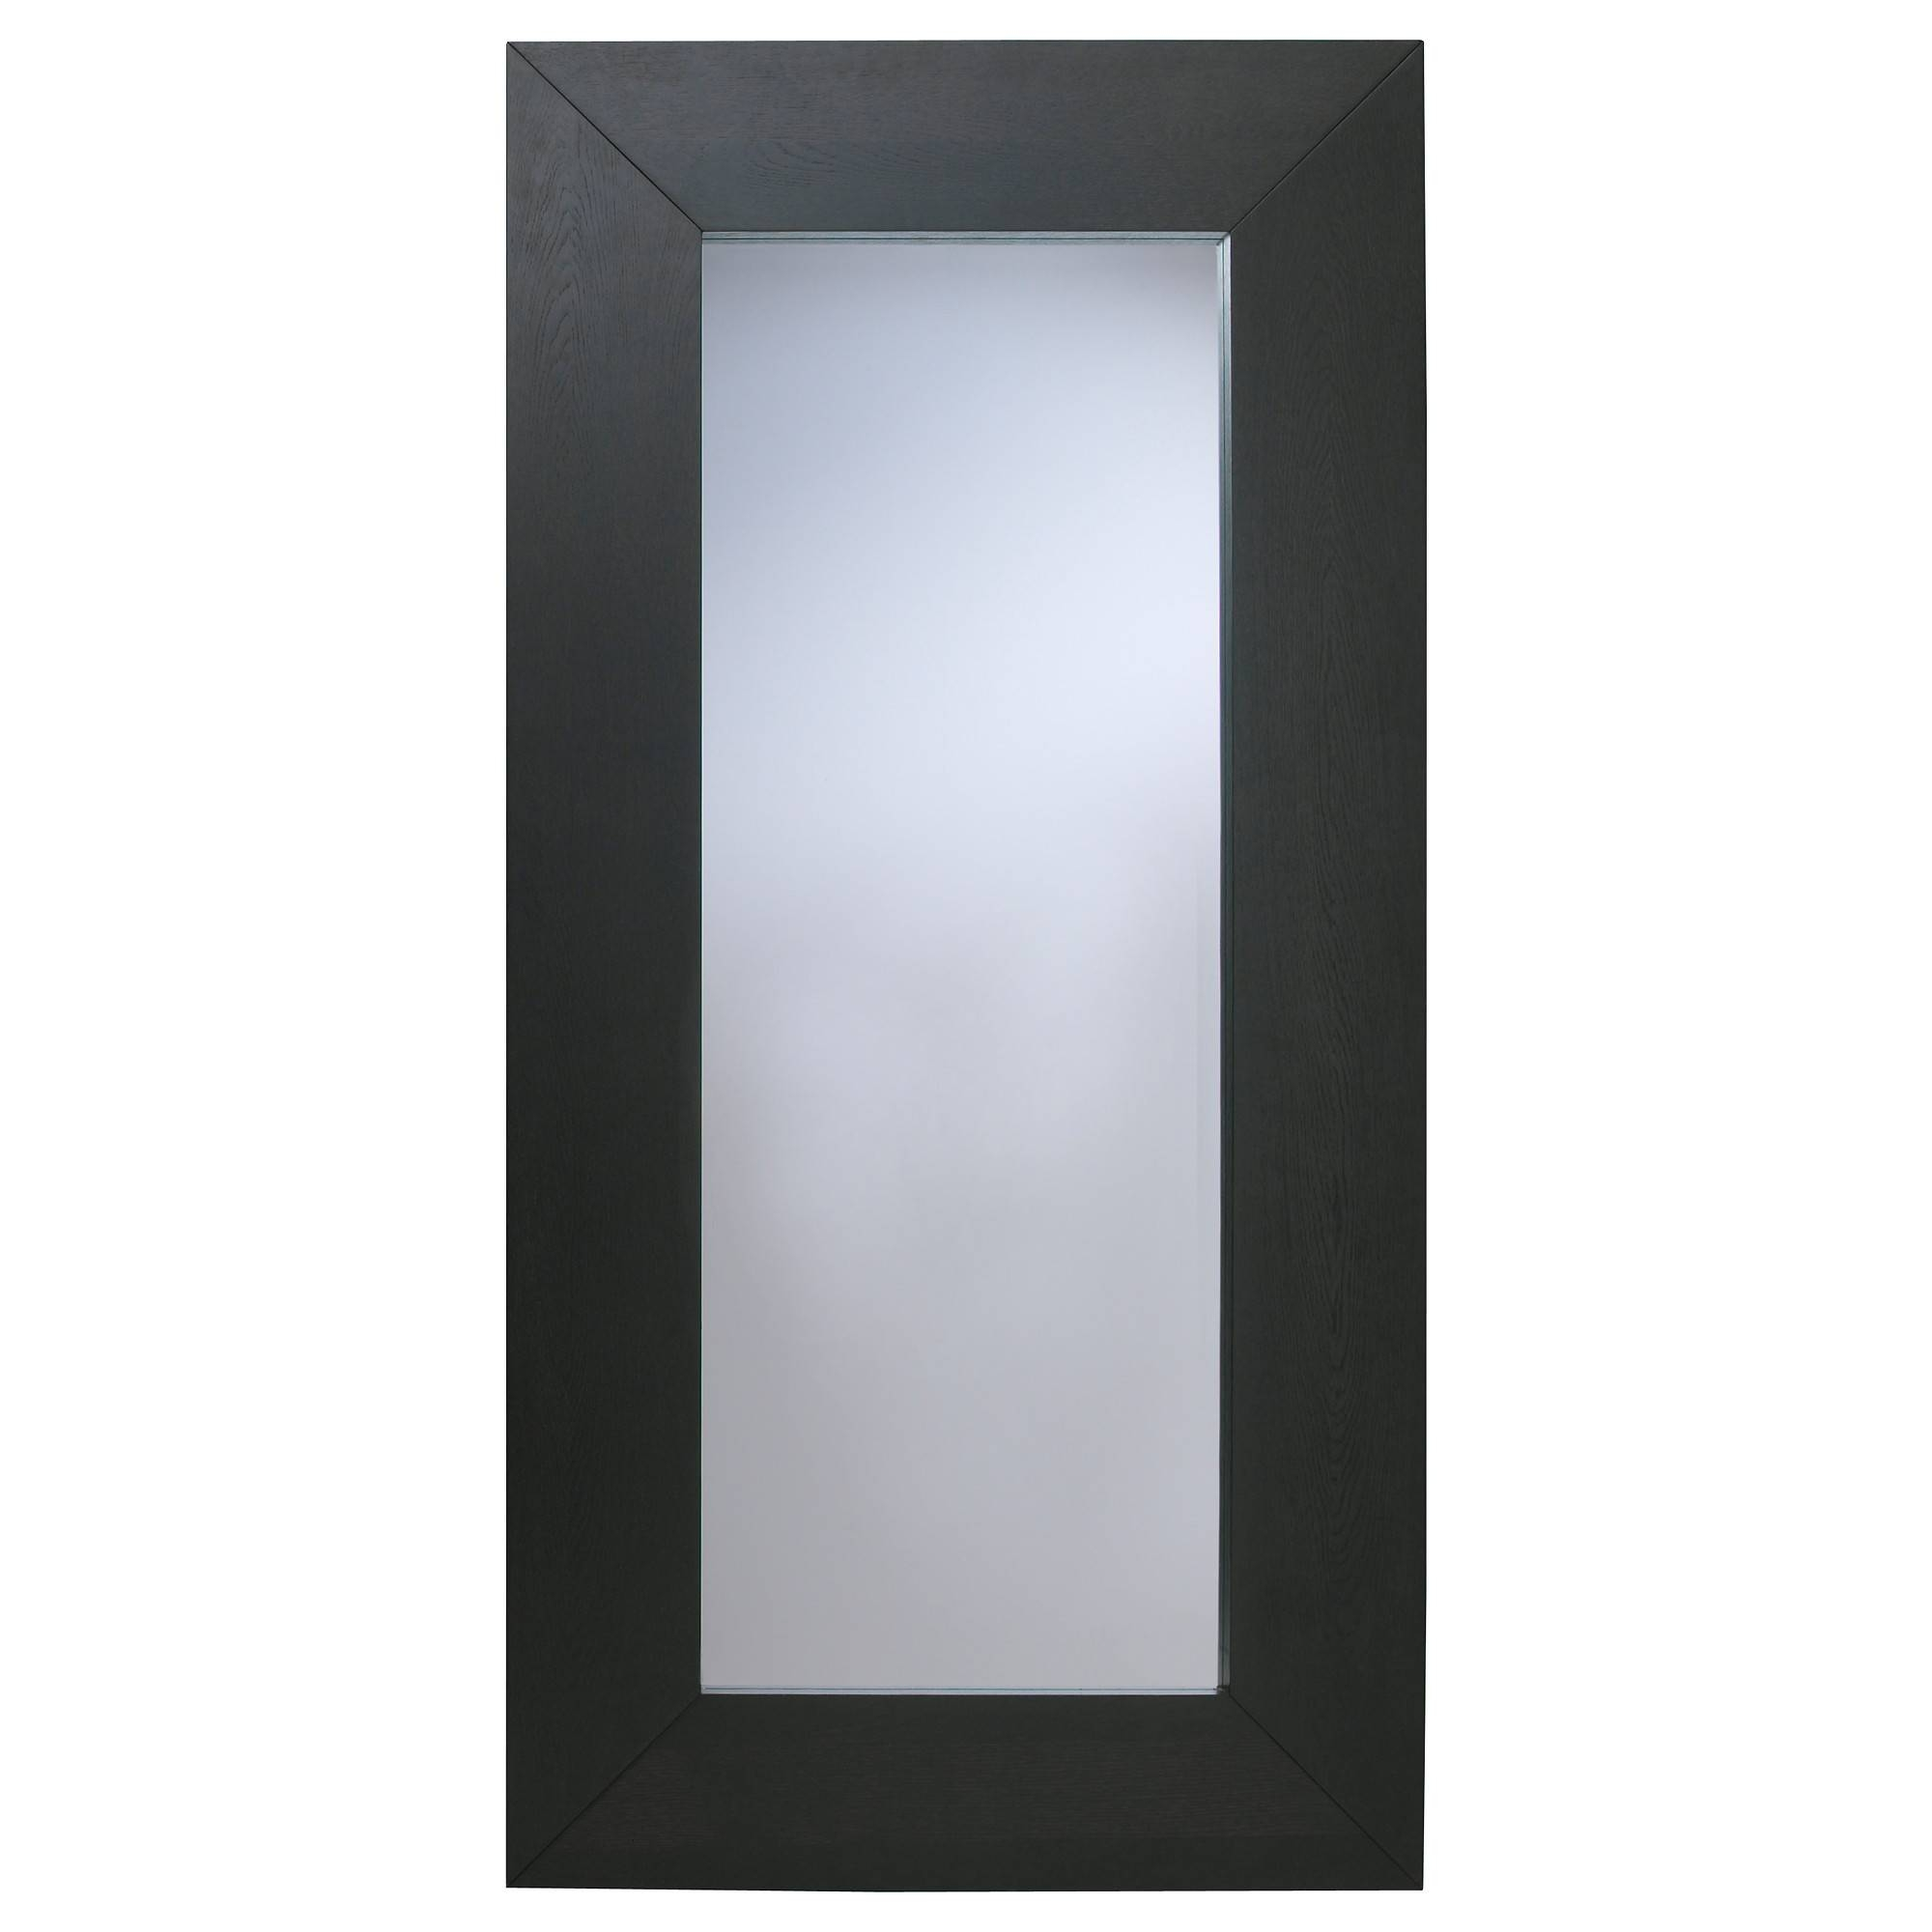 Full-Length Mirrors - Ikea regarding Silver Floor Standing Mirrors (Image 14 of 25)